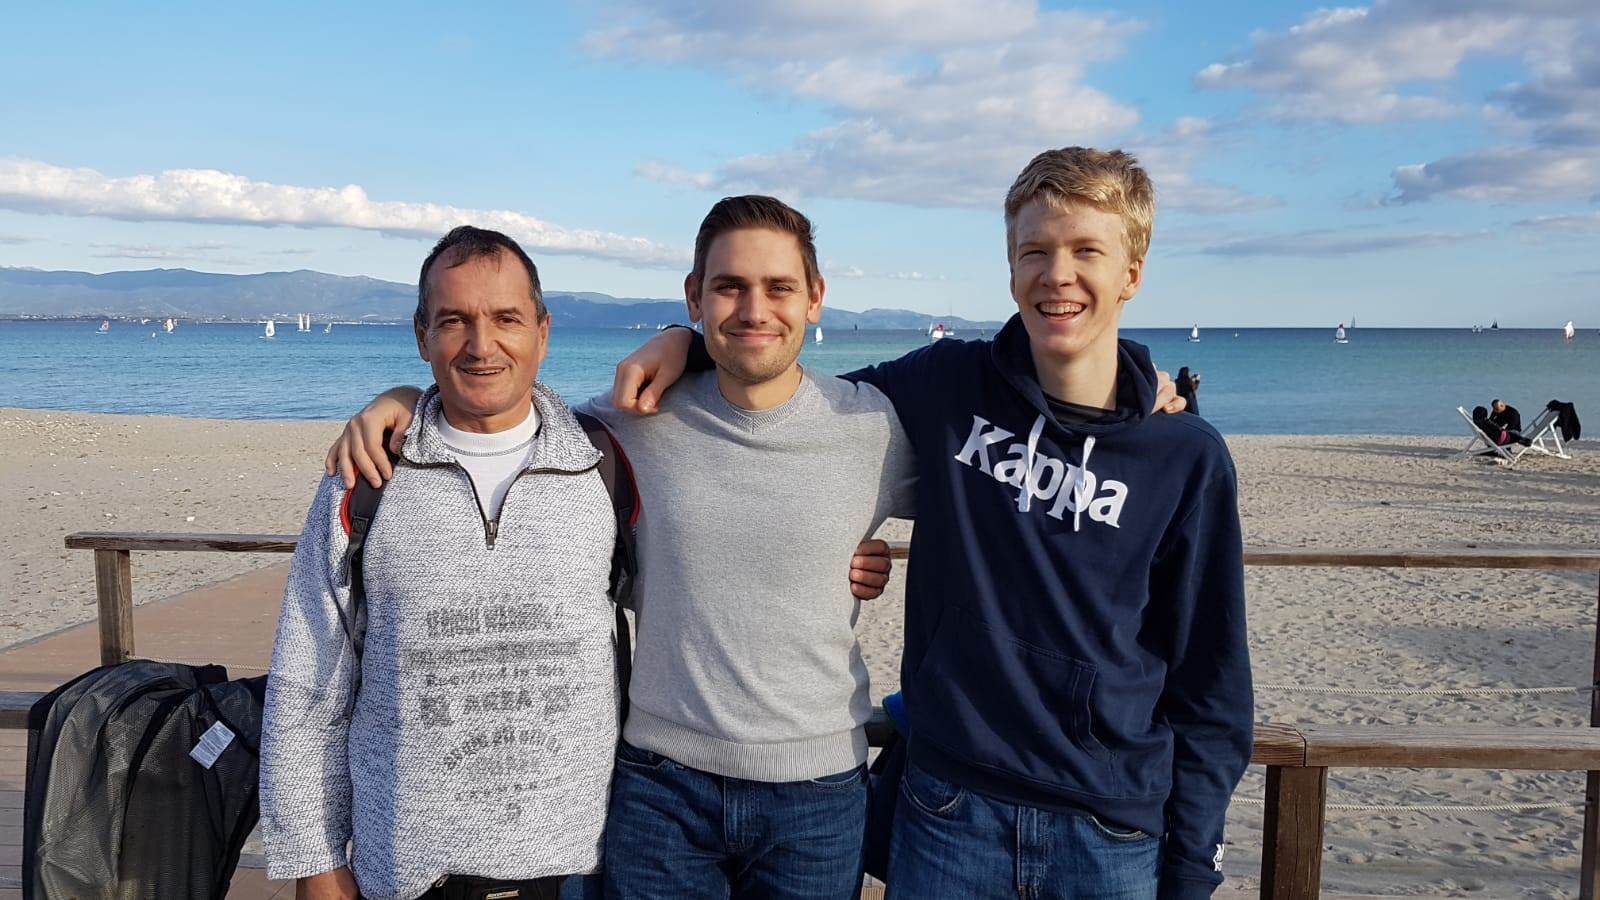 2019 Cagliari team beach